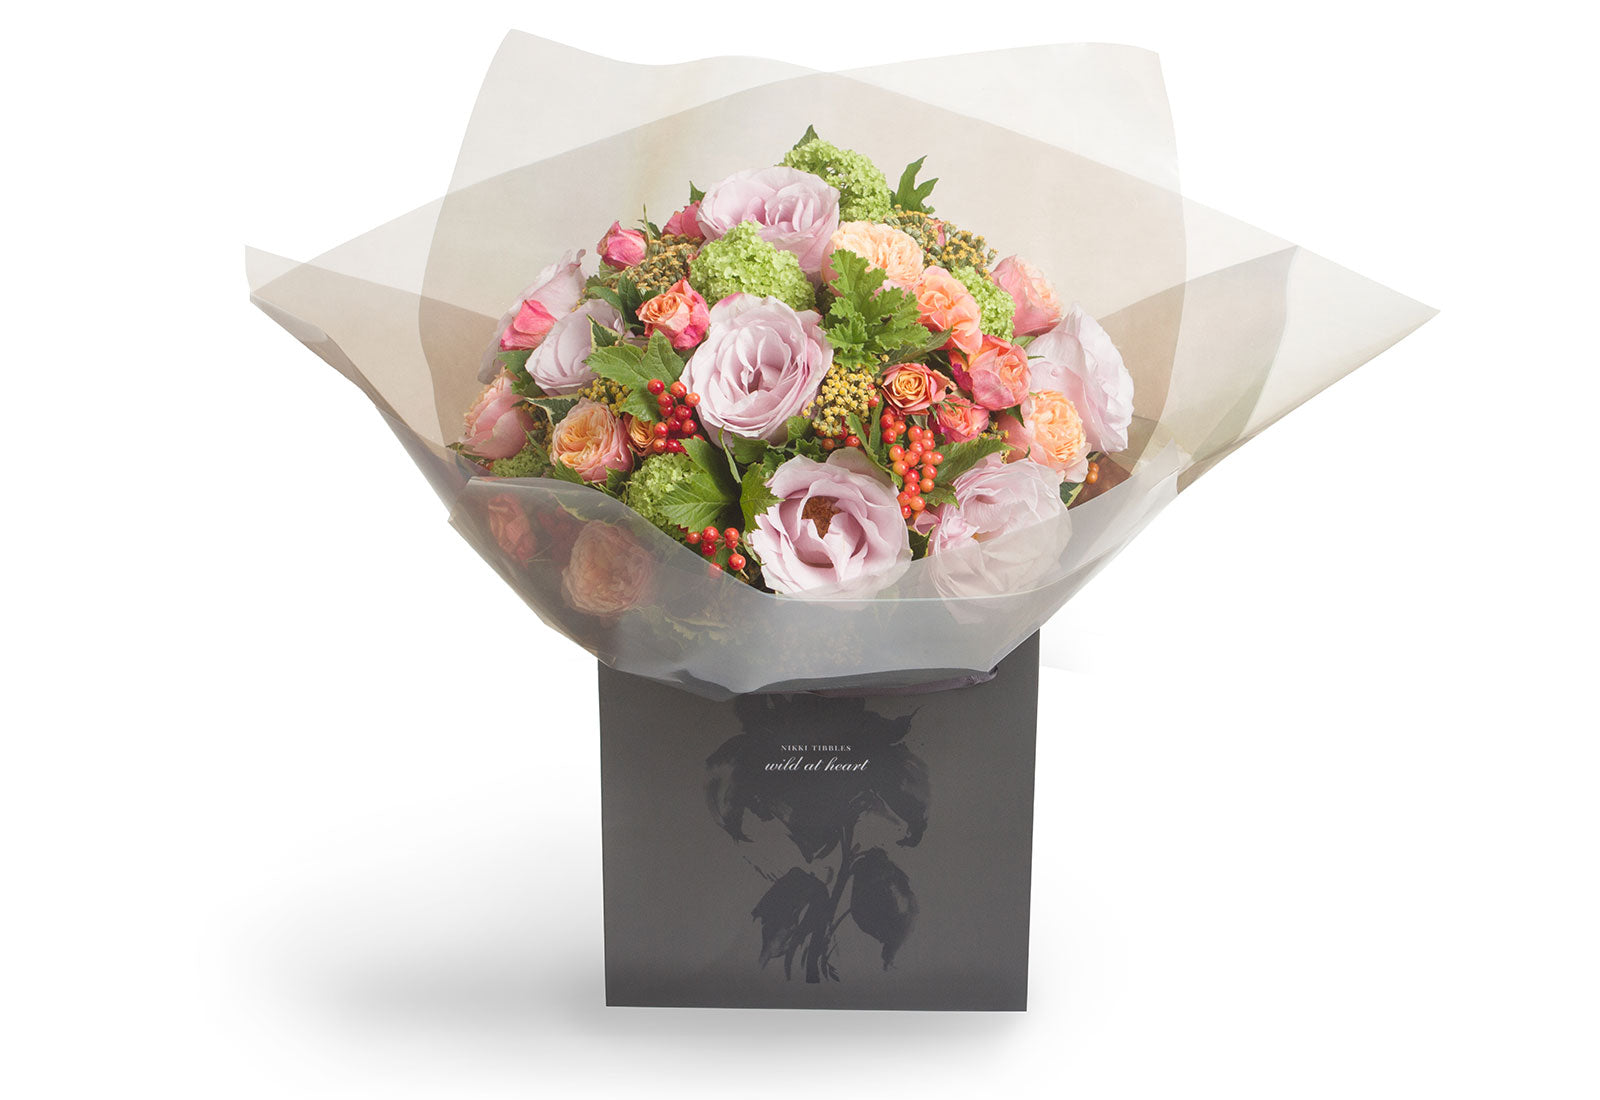 Flowers for a Year | Luxury Bouquets | Nikki Tibbles Wild at Heart